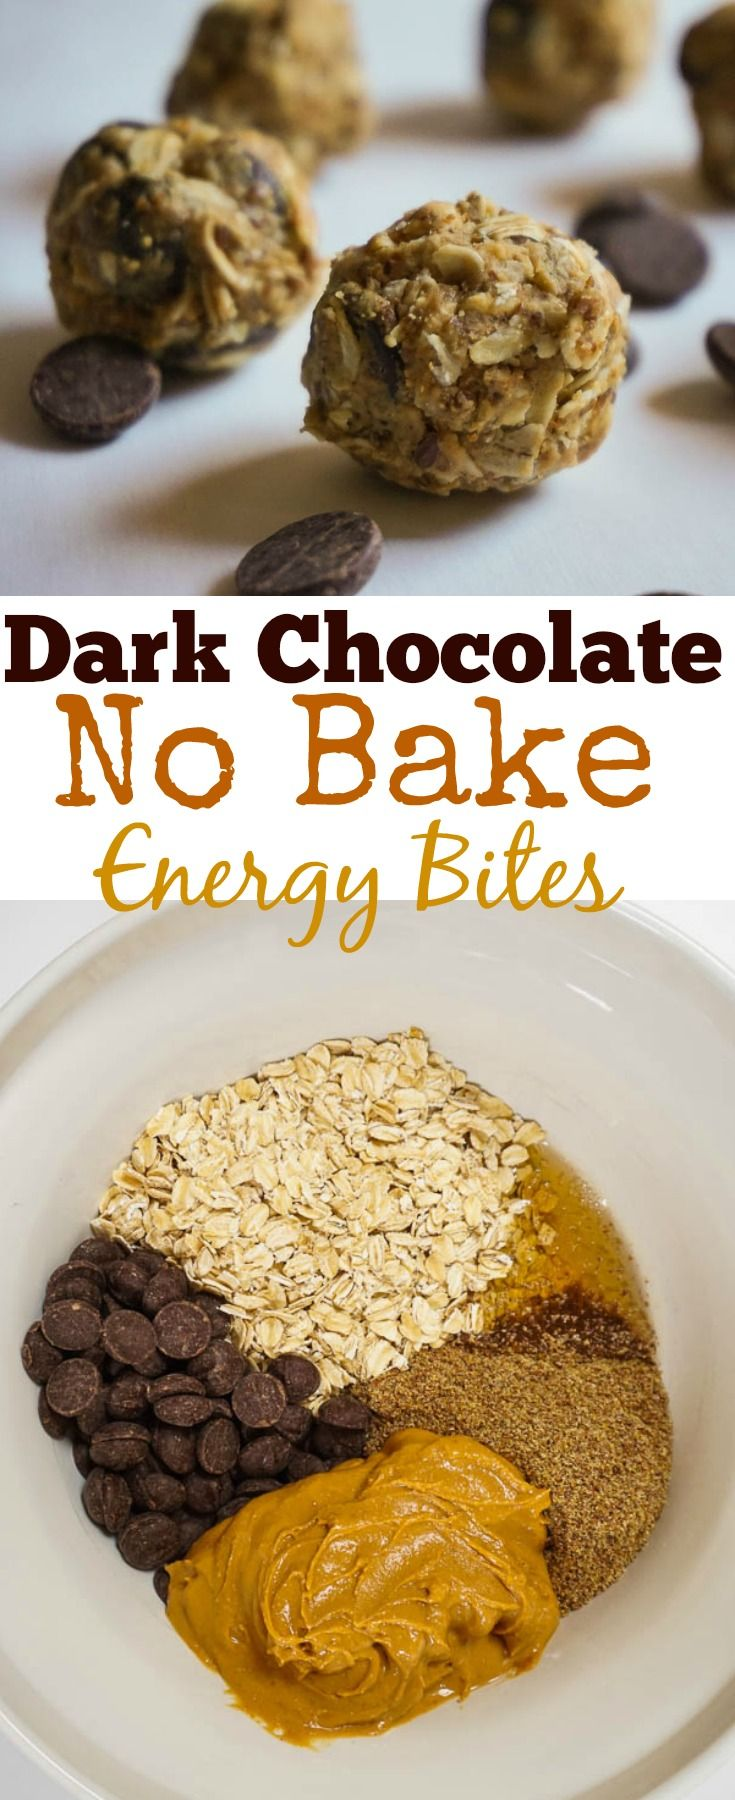 Dark Chocolate No Bake Energy Bites | Purely Easy